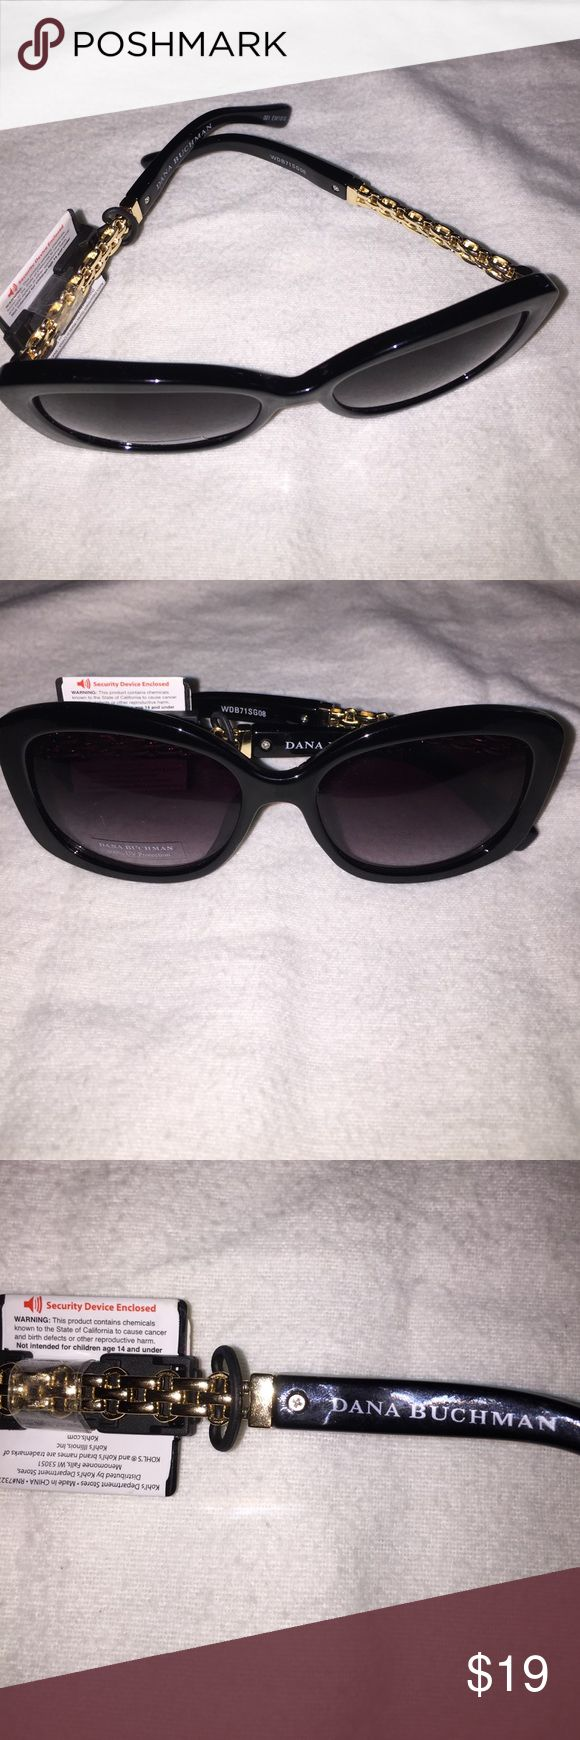 Dana Buchman gold chain UV sunglasses Beautiful black Dana Buchman sunglasses with gold chain details on the sides. 100% UV protection. New with tags. Dana Buchman Accessories Sunglasses